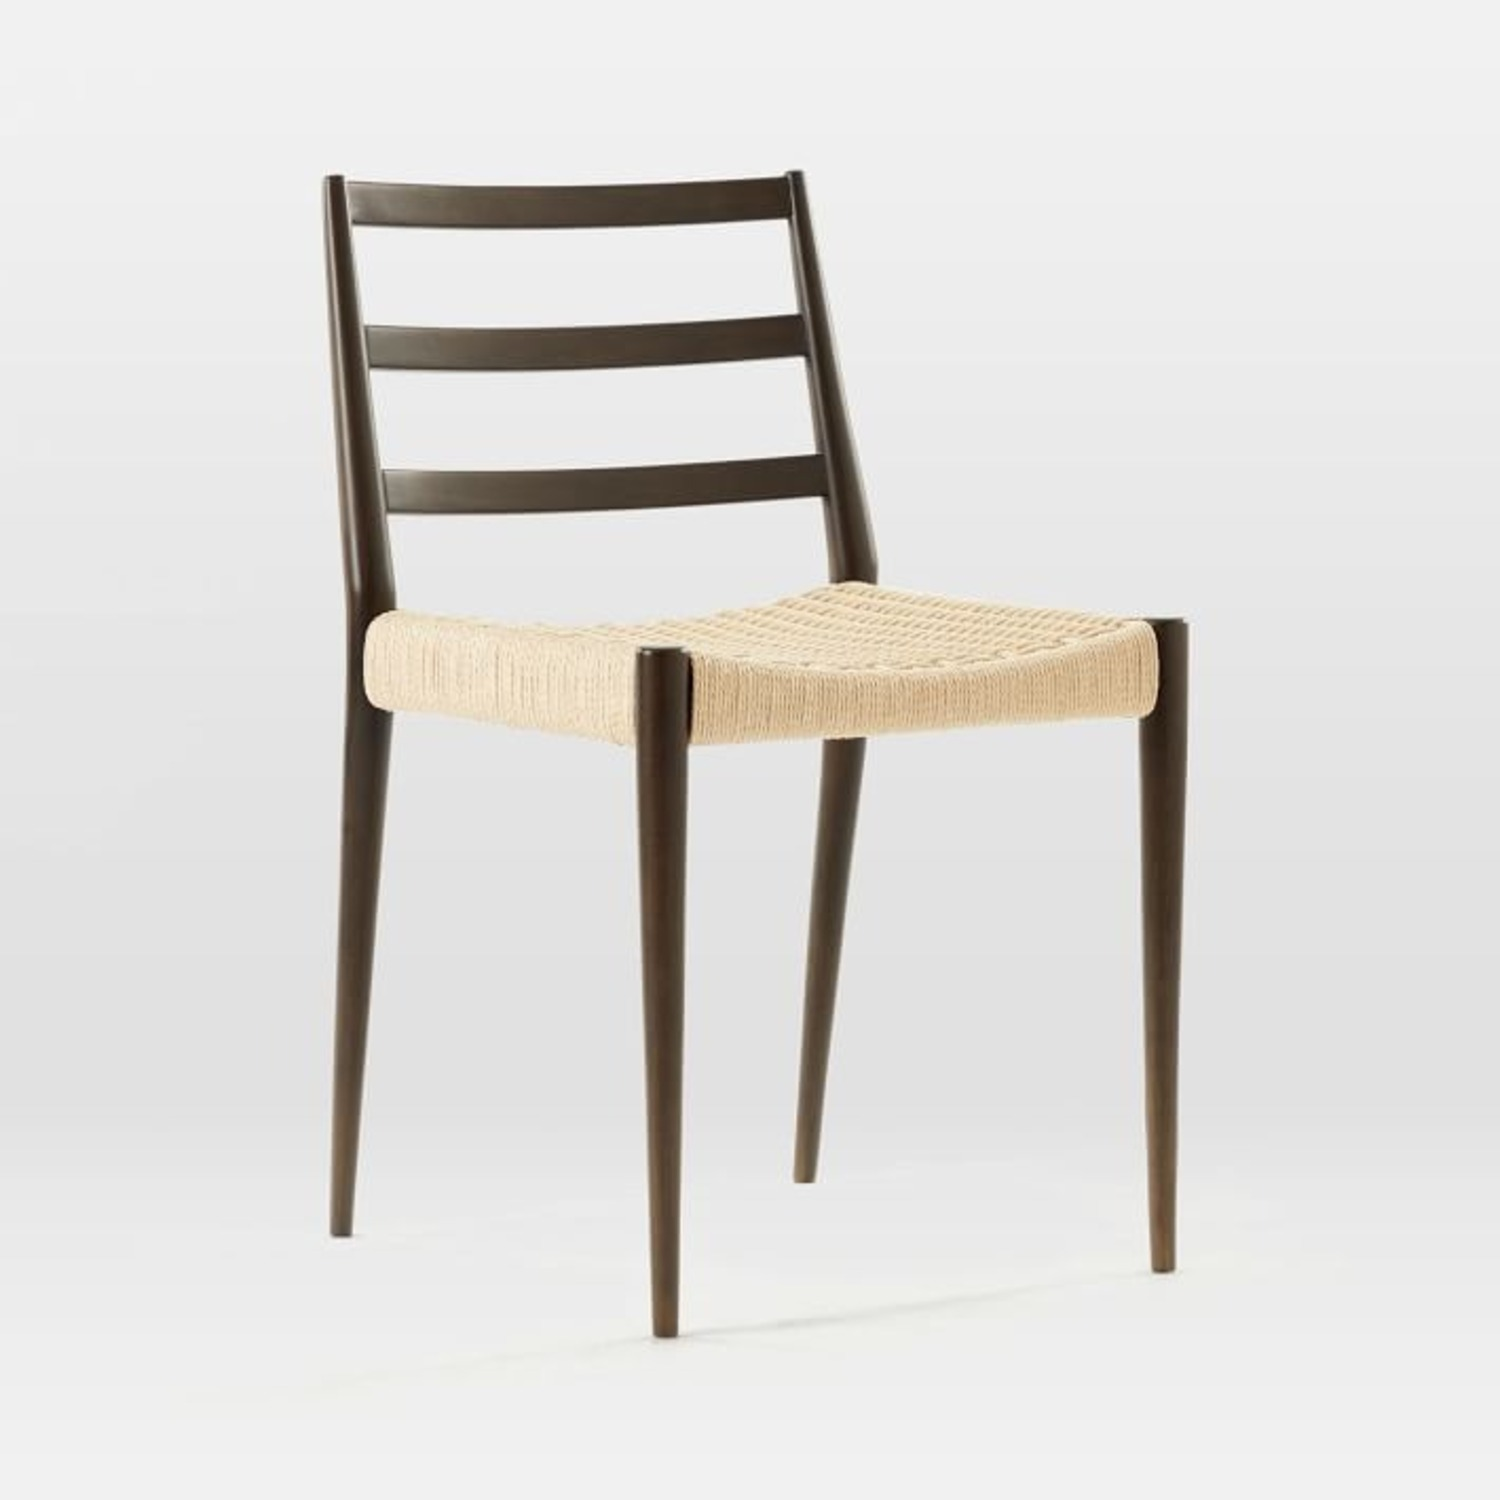 West Elm Holland Woven Dining Chair (Set of 2) - image-1